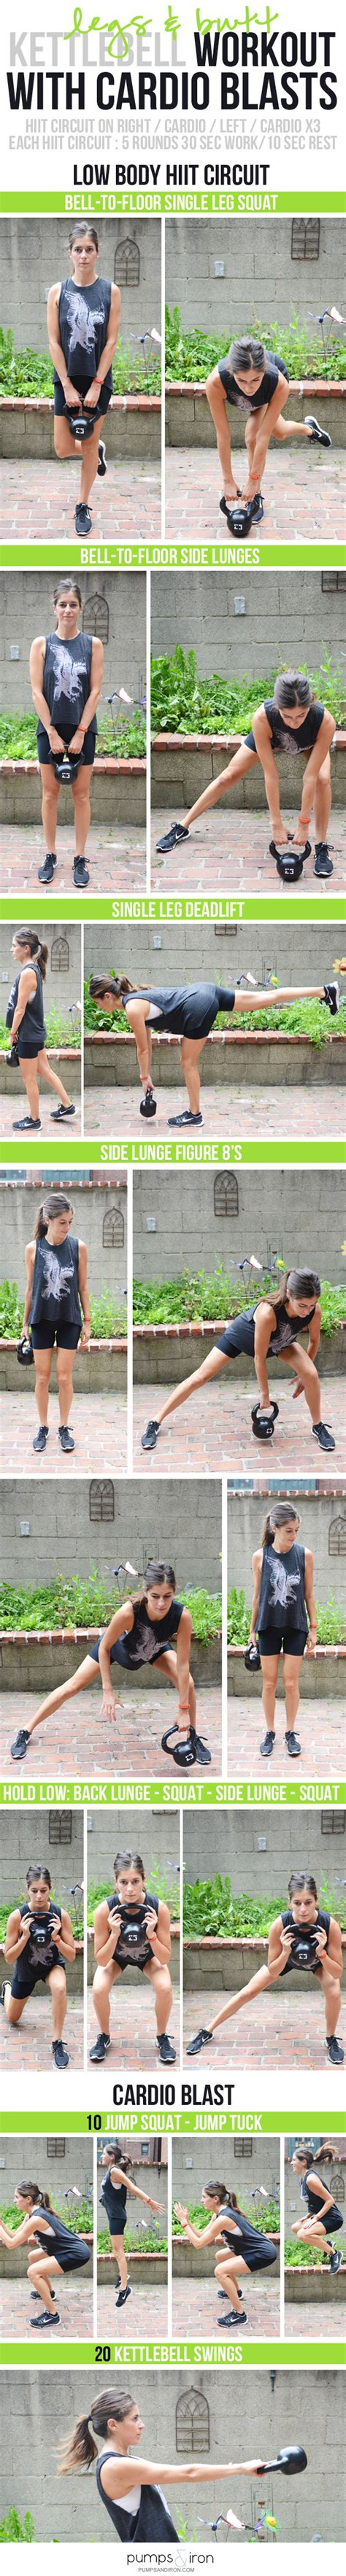 workout kettlebell butt legs cardio body lower